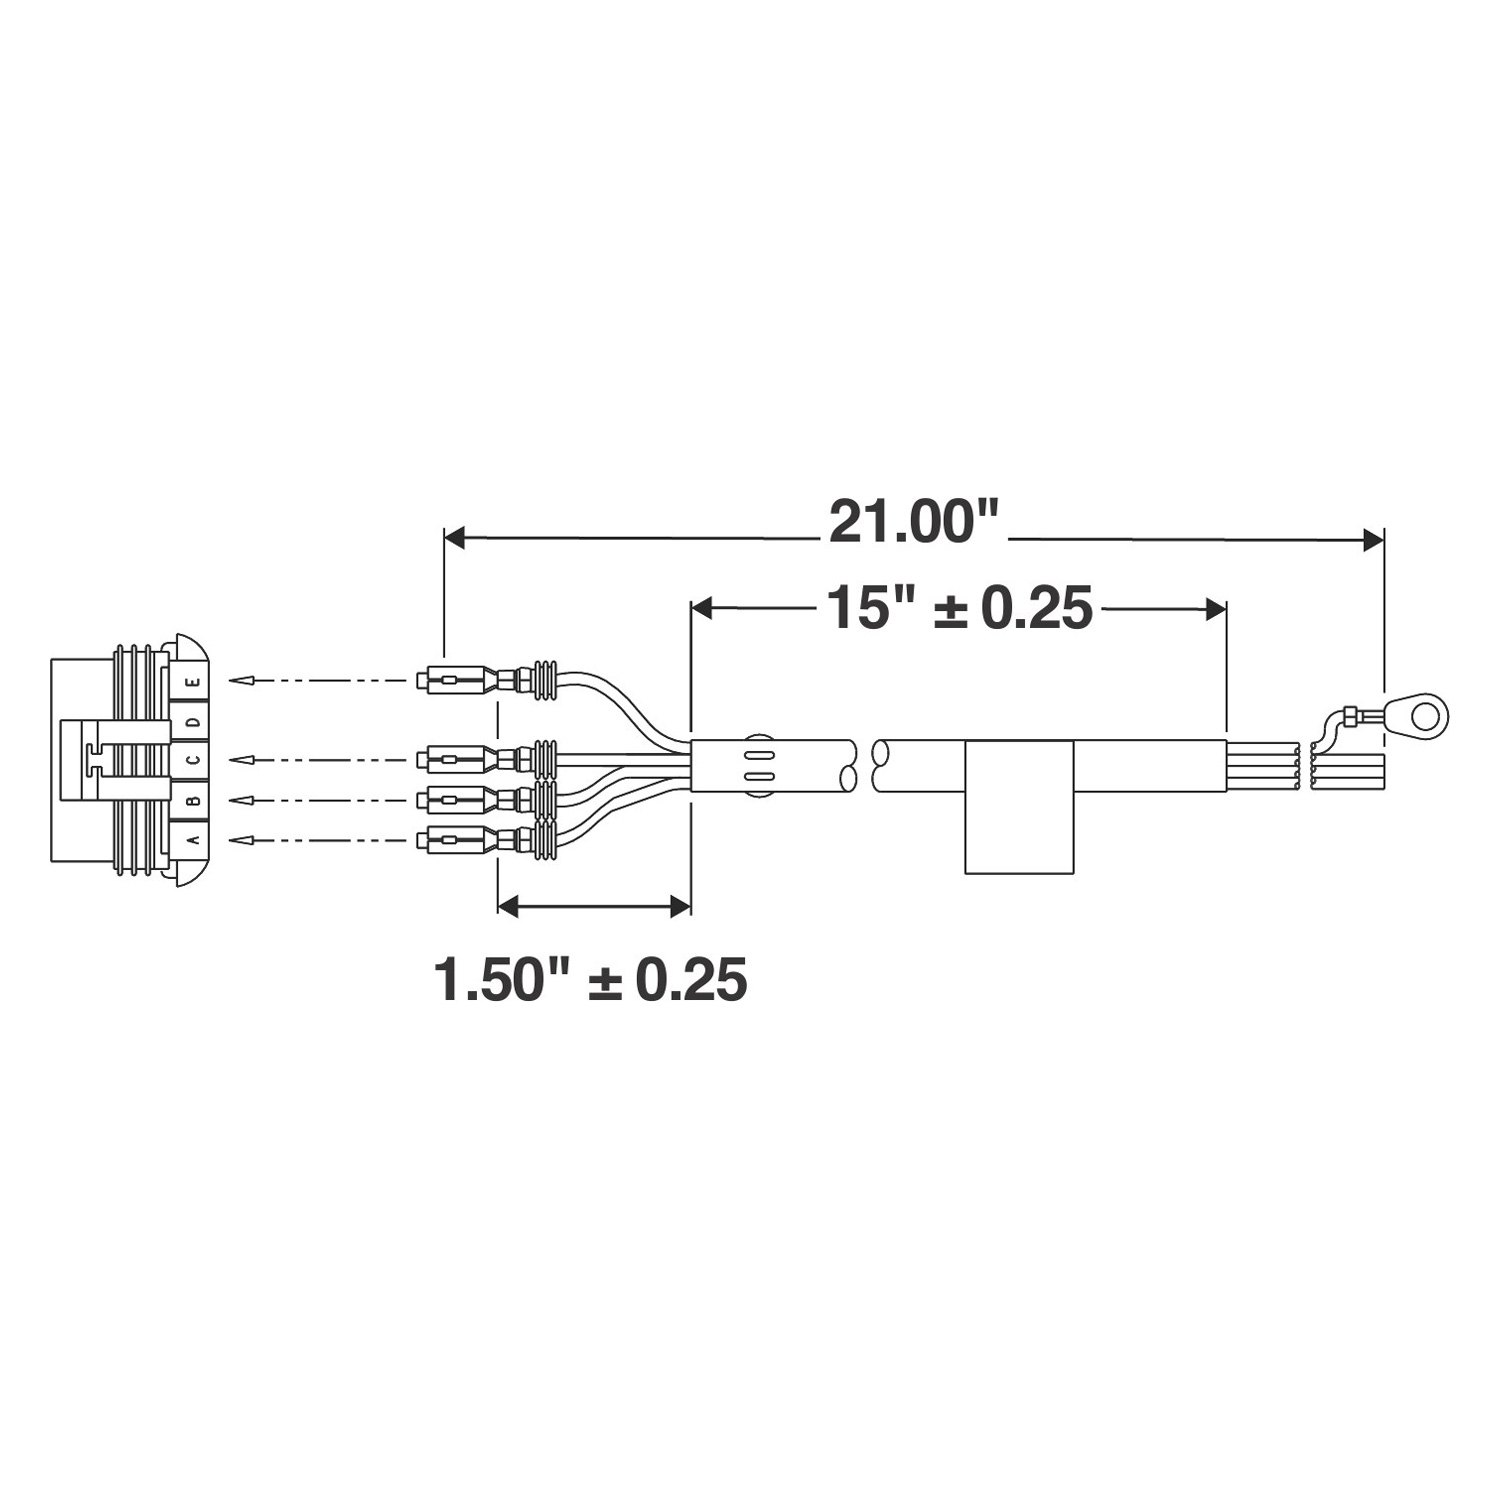 truck lite led wiring diagram swm 16 multiswitch 9464 signal stat 21 quot 1 plug 4 wire connector